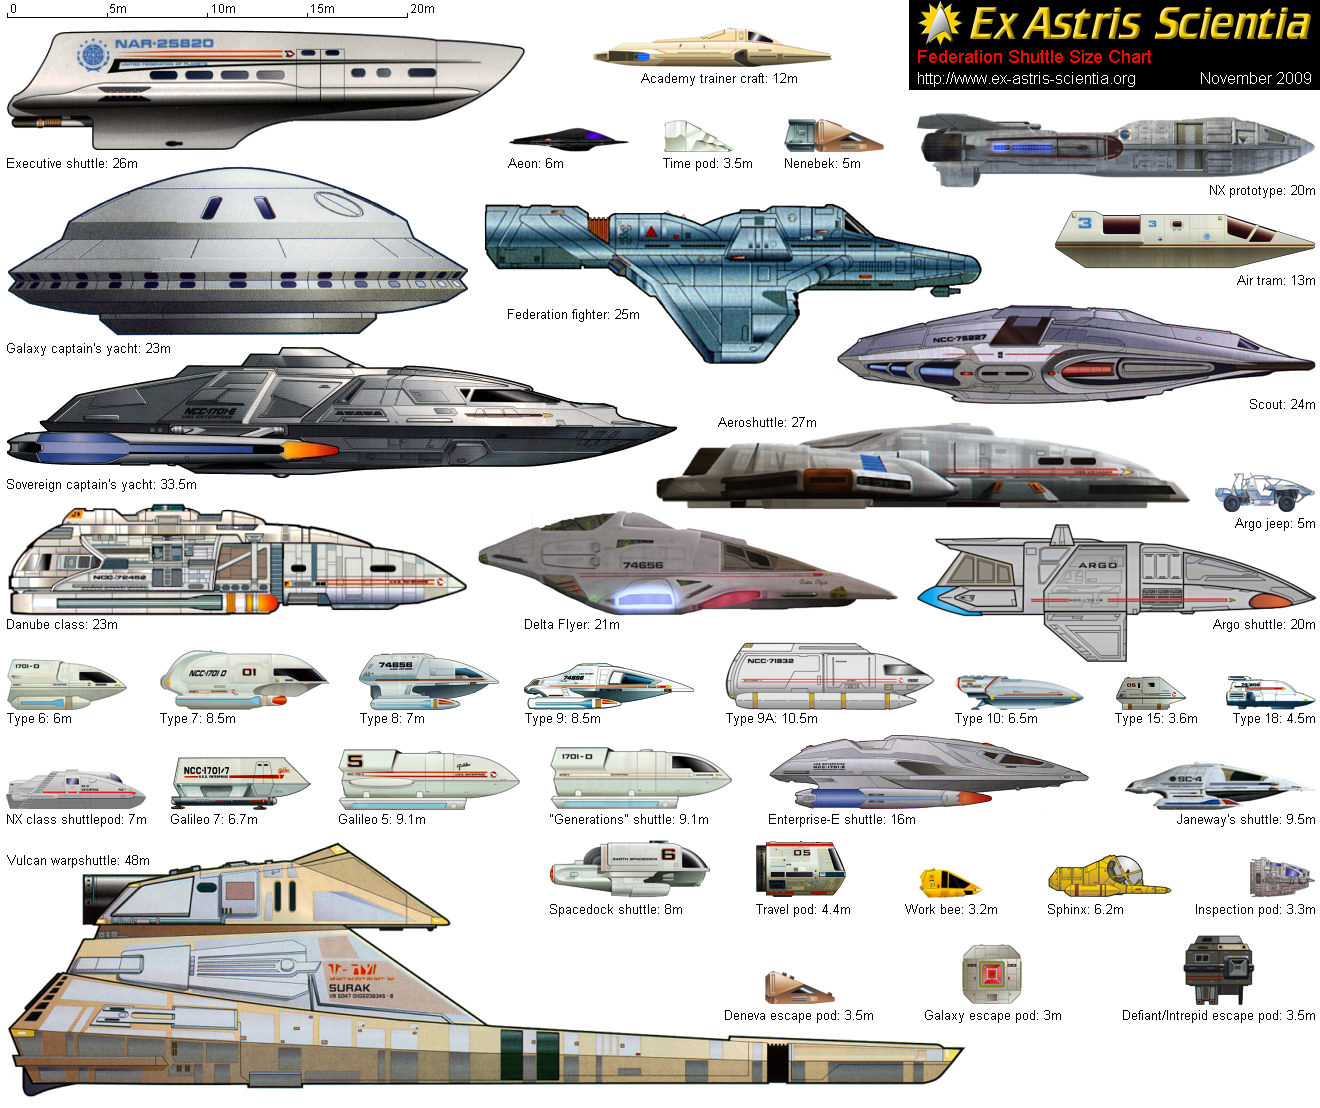 uss constitution diagram object oriented system sequence ex astris scientia - fleet chart annotations